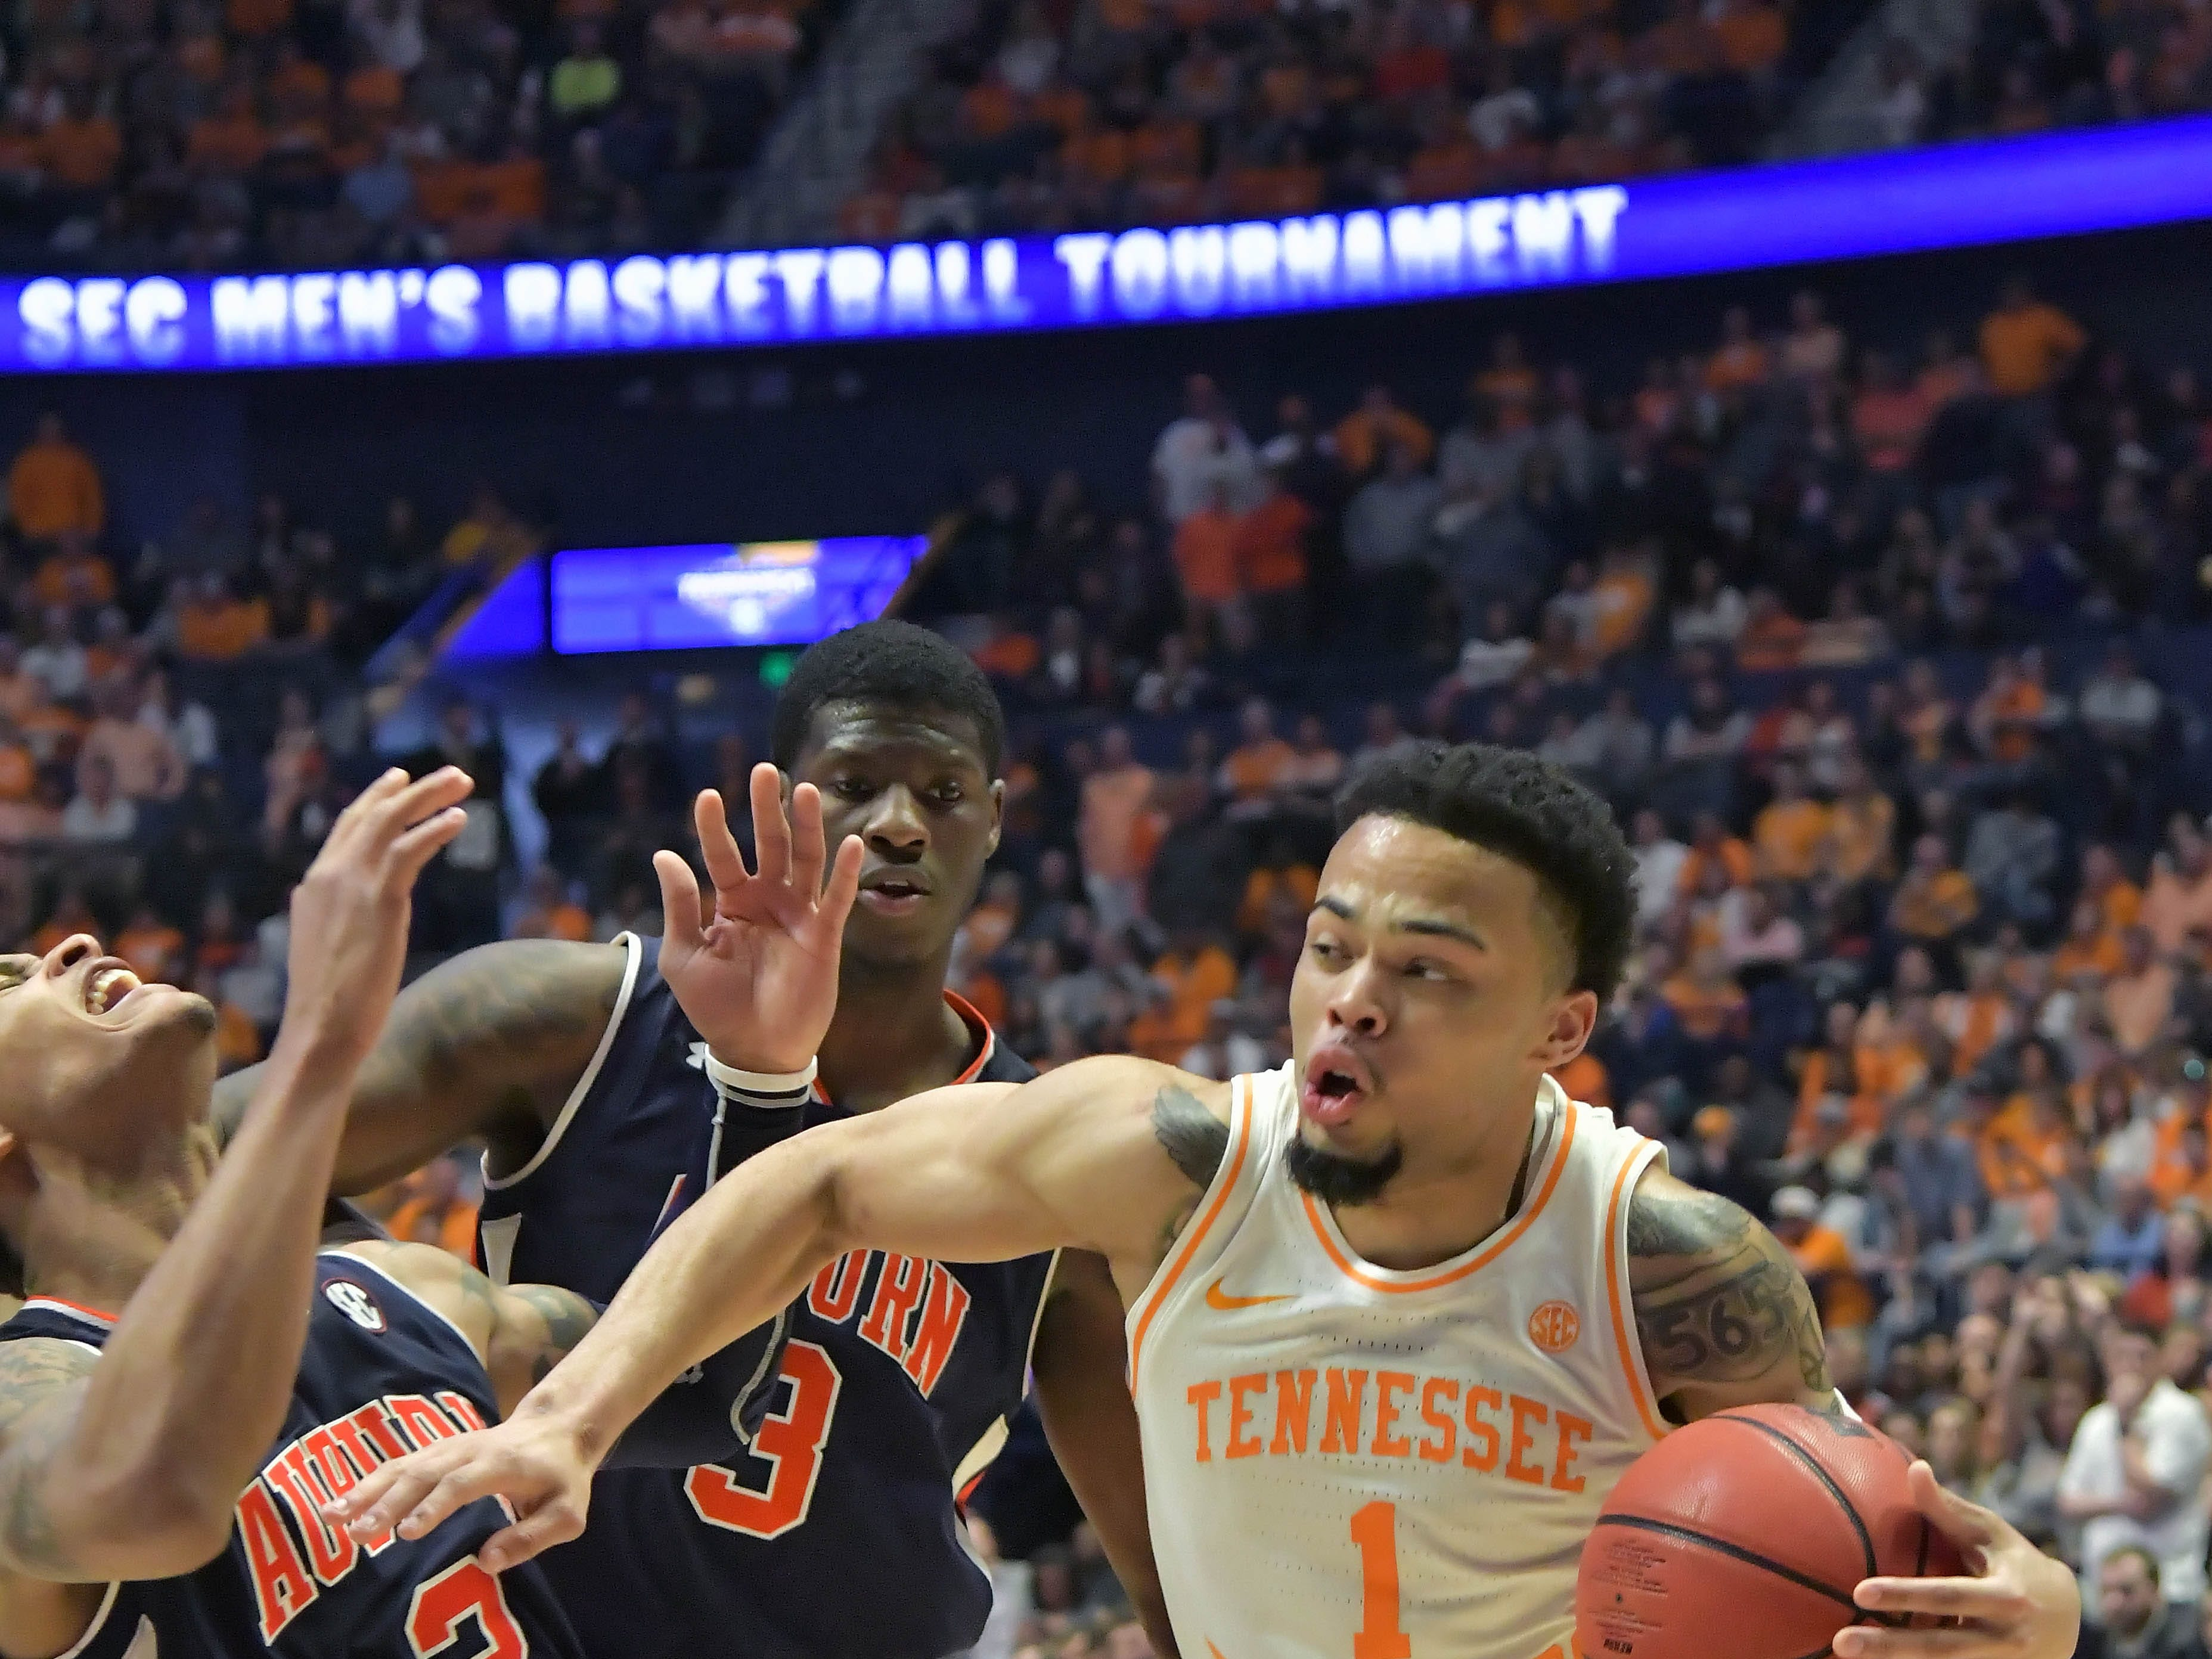 Mar 17, 2019; Nashville, TN, USA; Tennessee Volunteers guard Lamonte Turner (1) drives against Auburn Tigers guard Bryce Brown (2) during the second half of the championship game in the SEC conference tournament at Bridgestone Arena. Auburn won 84-64. Mandatory Credit: Jim Brown-USA TODAY Sports